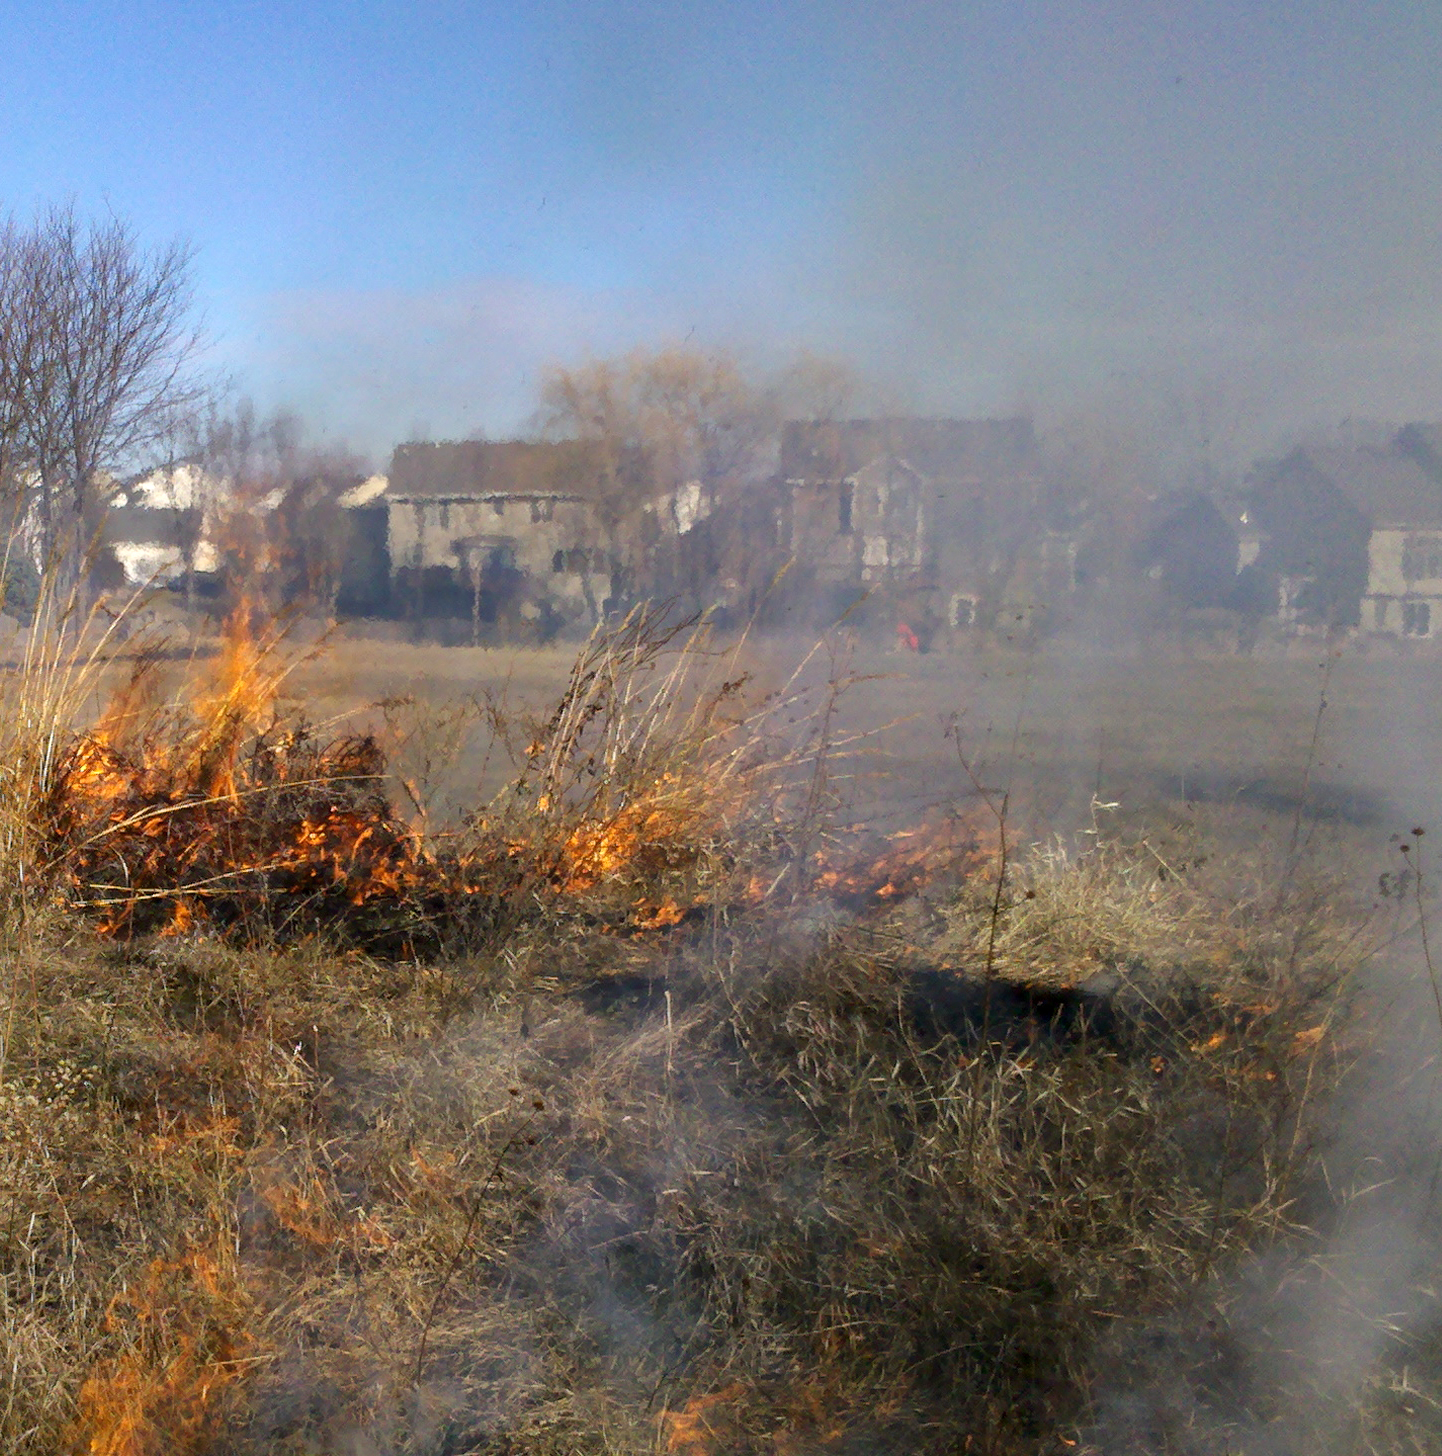 Prescribed prairie burning to take place in West Des Moines